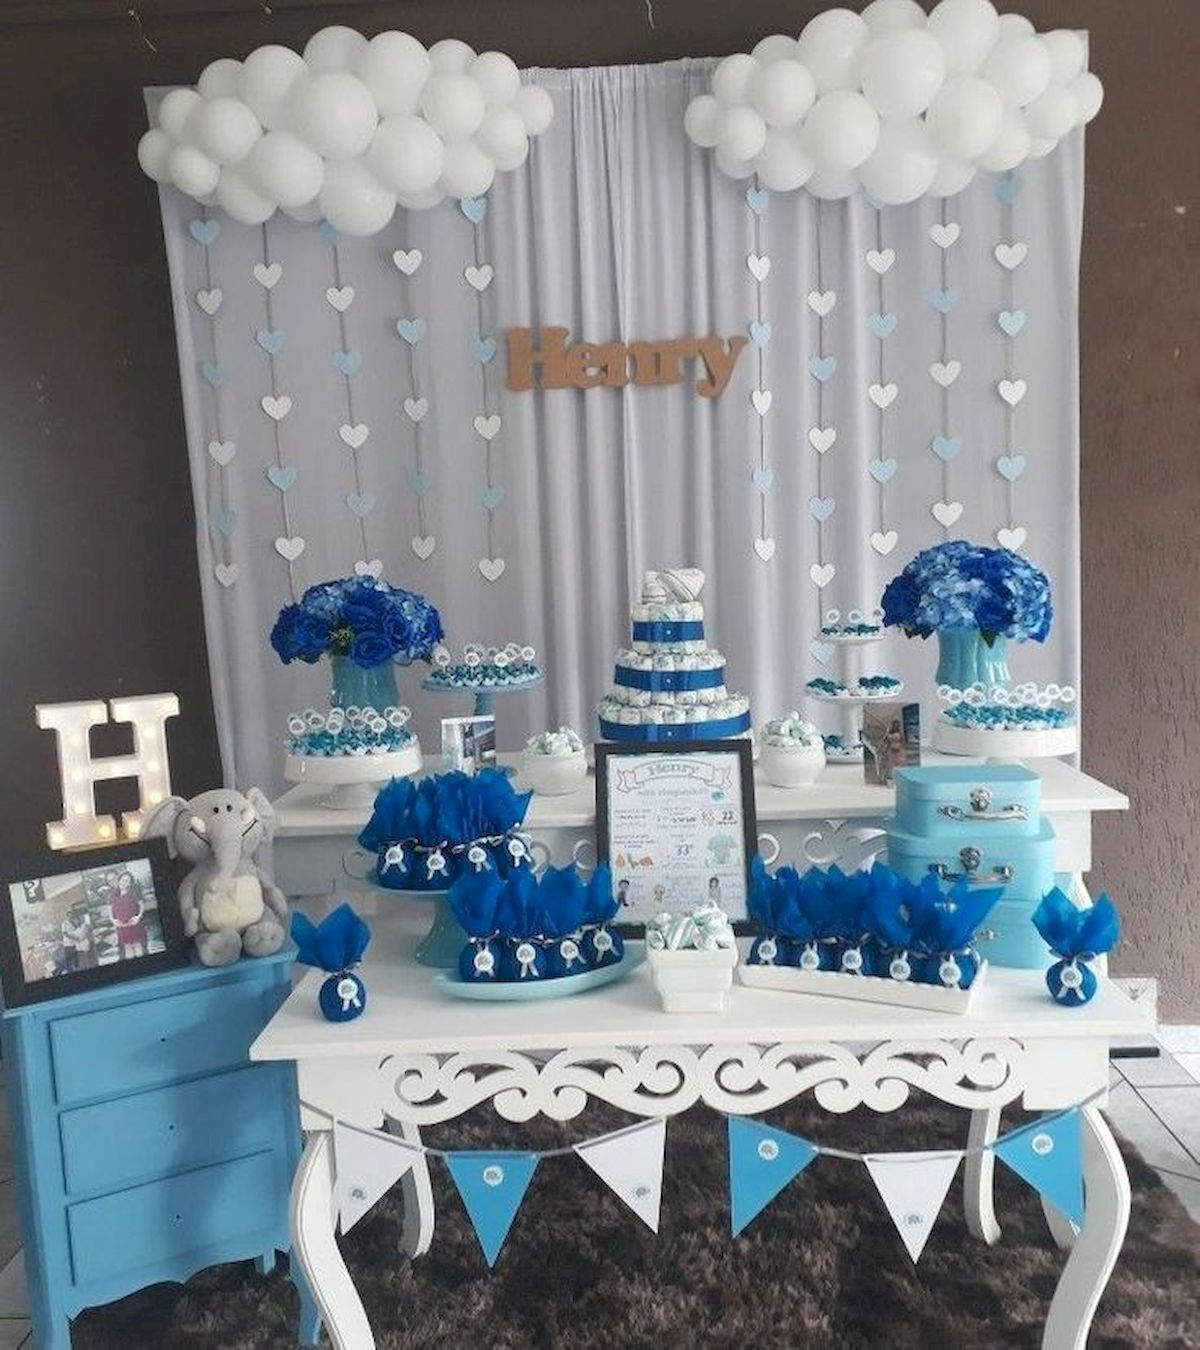 50 Awesome Baby Shower Themes And Decorating Ideas For Boy Decoracion Baby Shower Baby Tea Baby Shower Diy